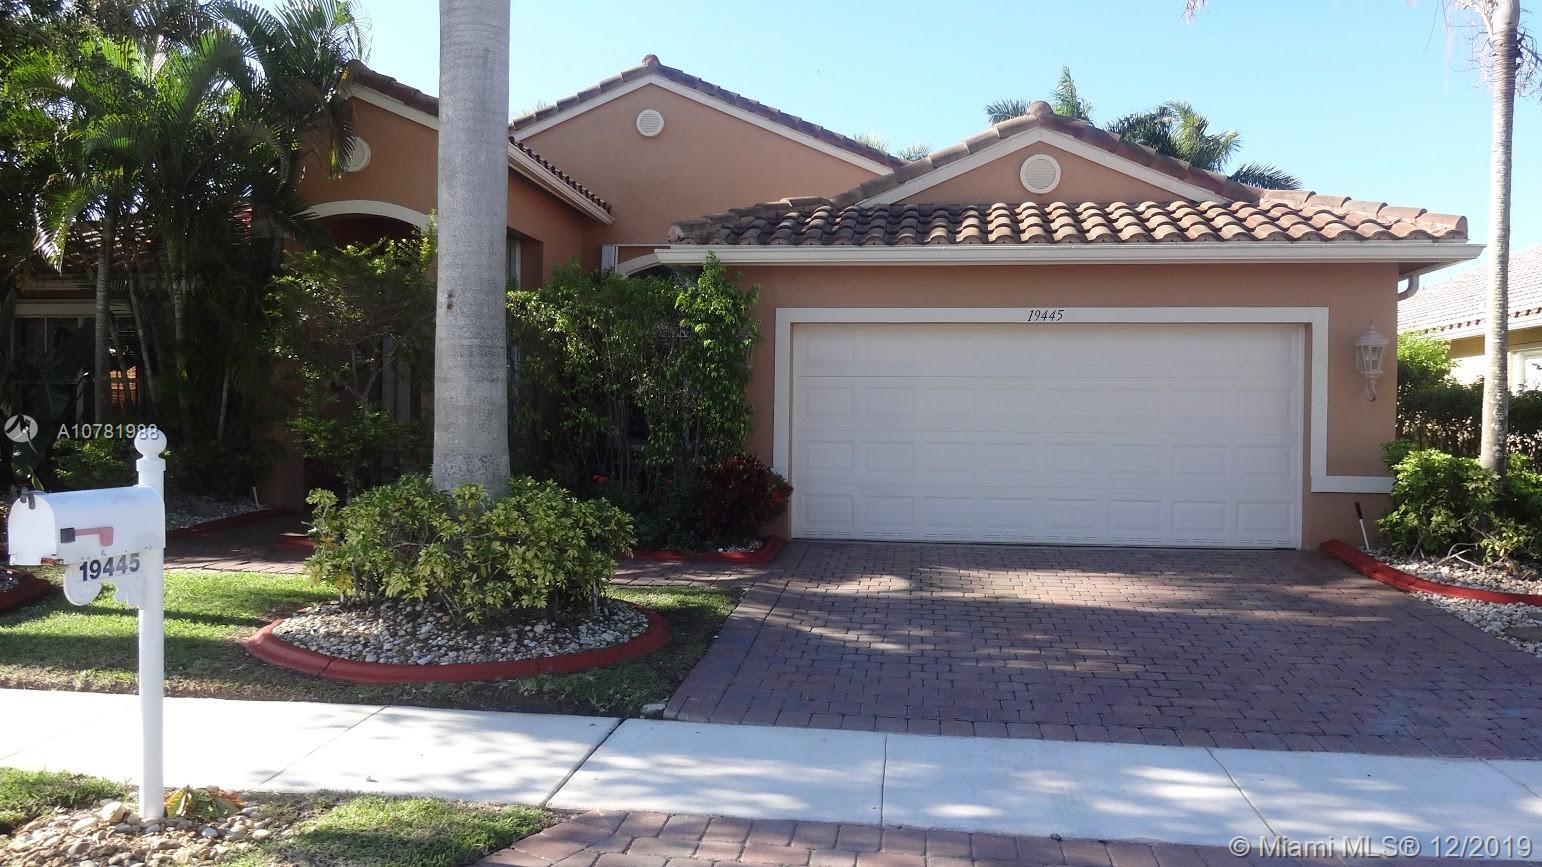 19445 SW 14th St # 19445, Pembroke Pines, Florida 33029, 4 Bedrooms Bedrooms, ,3 BathroomsBathrooms,Residential Lease,For Rent,19445 SW 14th St # 19445,A10781988